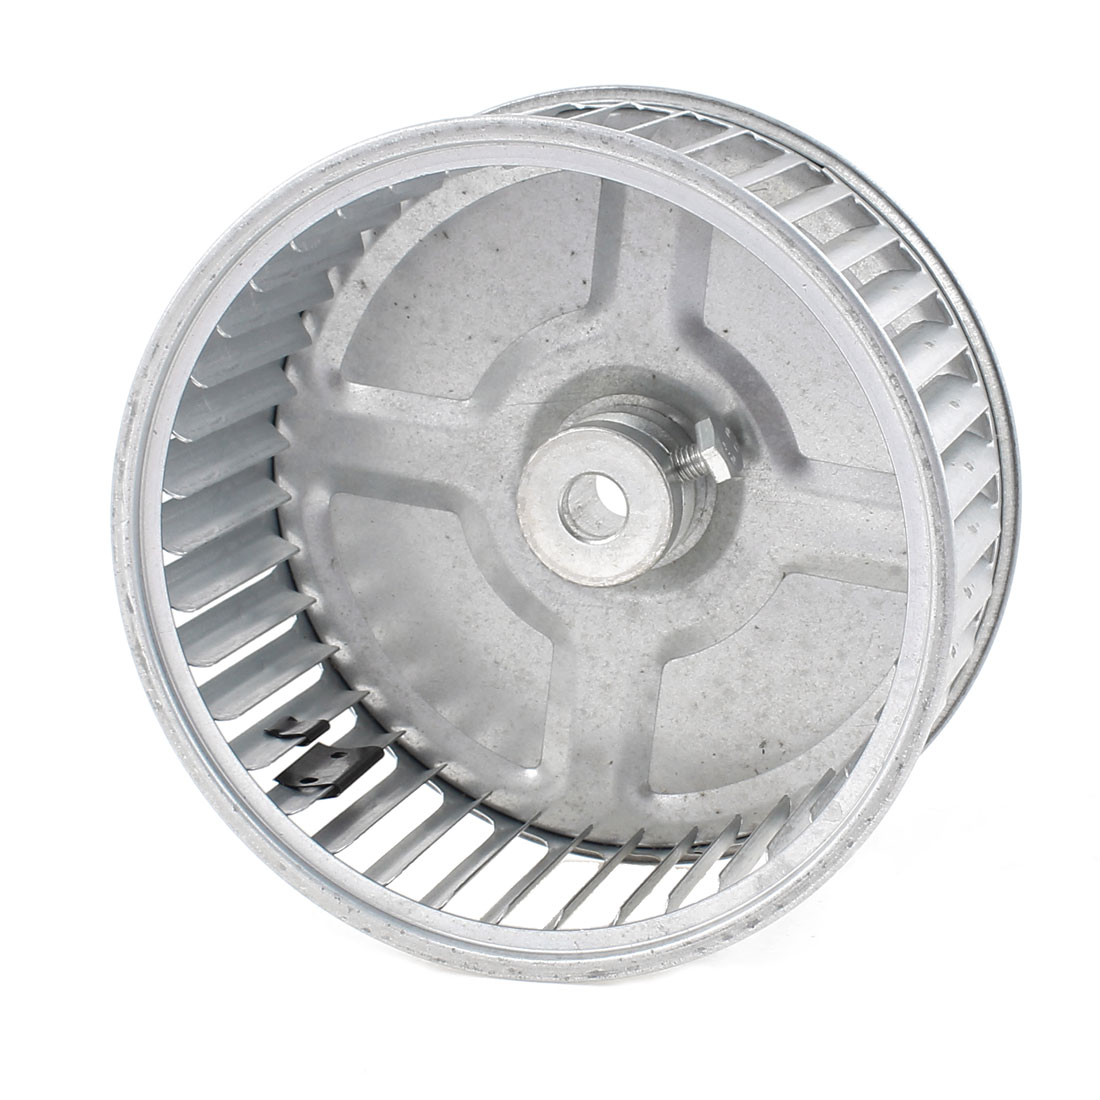 UXCELL 175Mm Diameter Centrifugal Wheel Round Fan Impeller Silver Tone qaulity aluminum vacuum cleaner motor fan blade 112mm 8mm hole wind wheel impeller